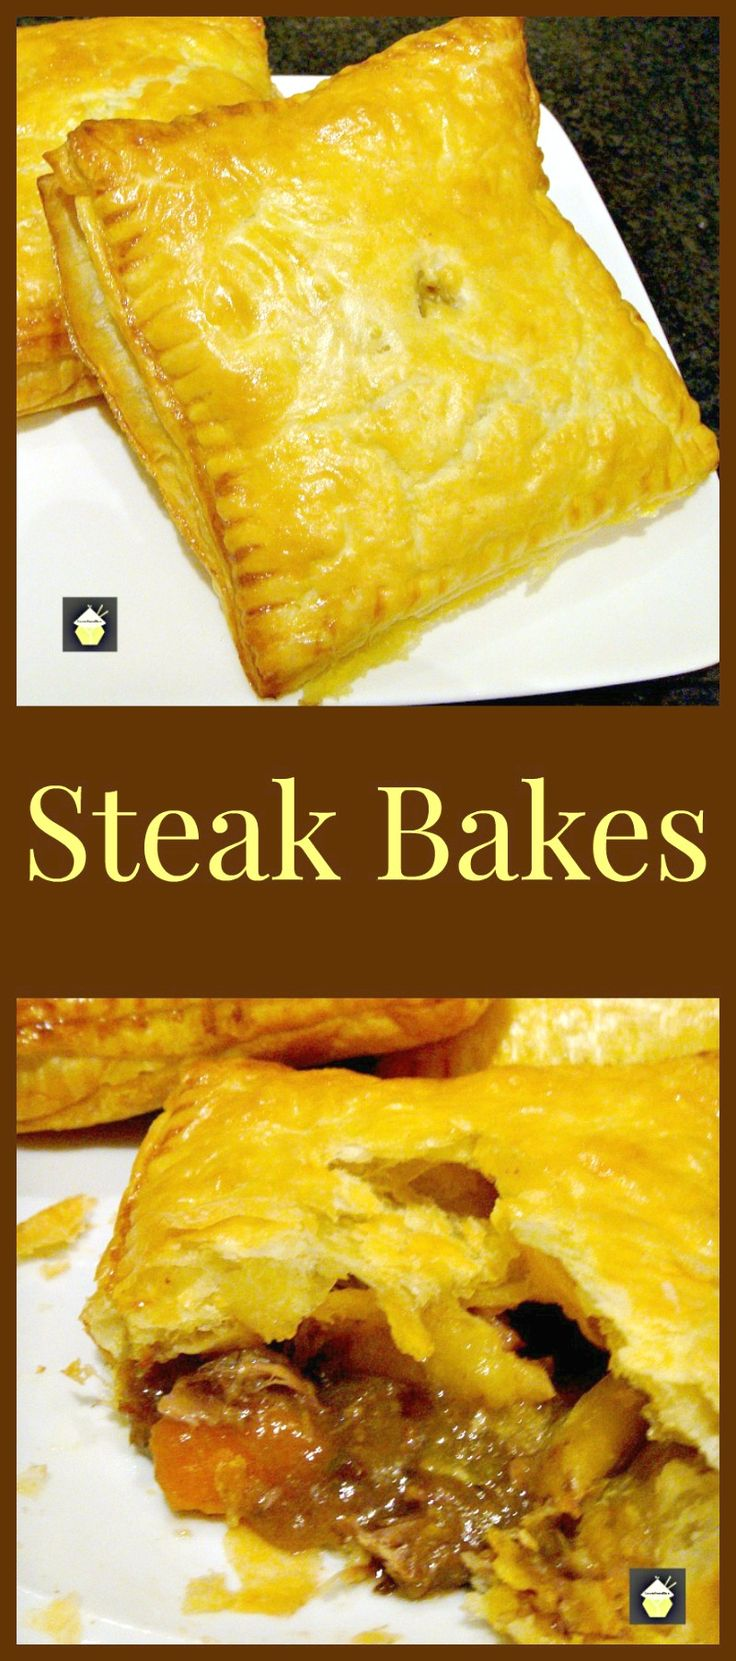 Steak Bakes (like Savory hand pies!). Delicious mini puff pastry pies using leftover fillings from your pot roasts, casseroles and roast dinners! Really easy to make and great for lunches or as part of a dinner. | Lovefoodies.com